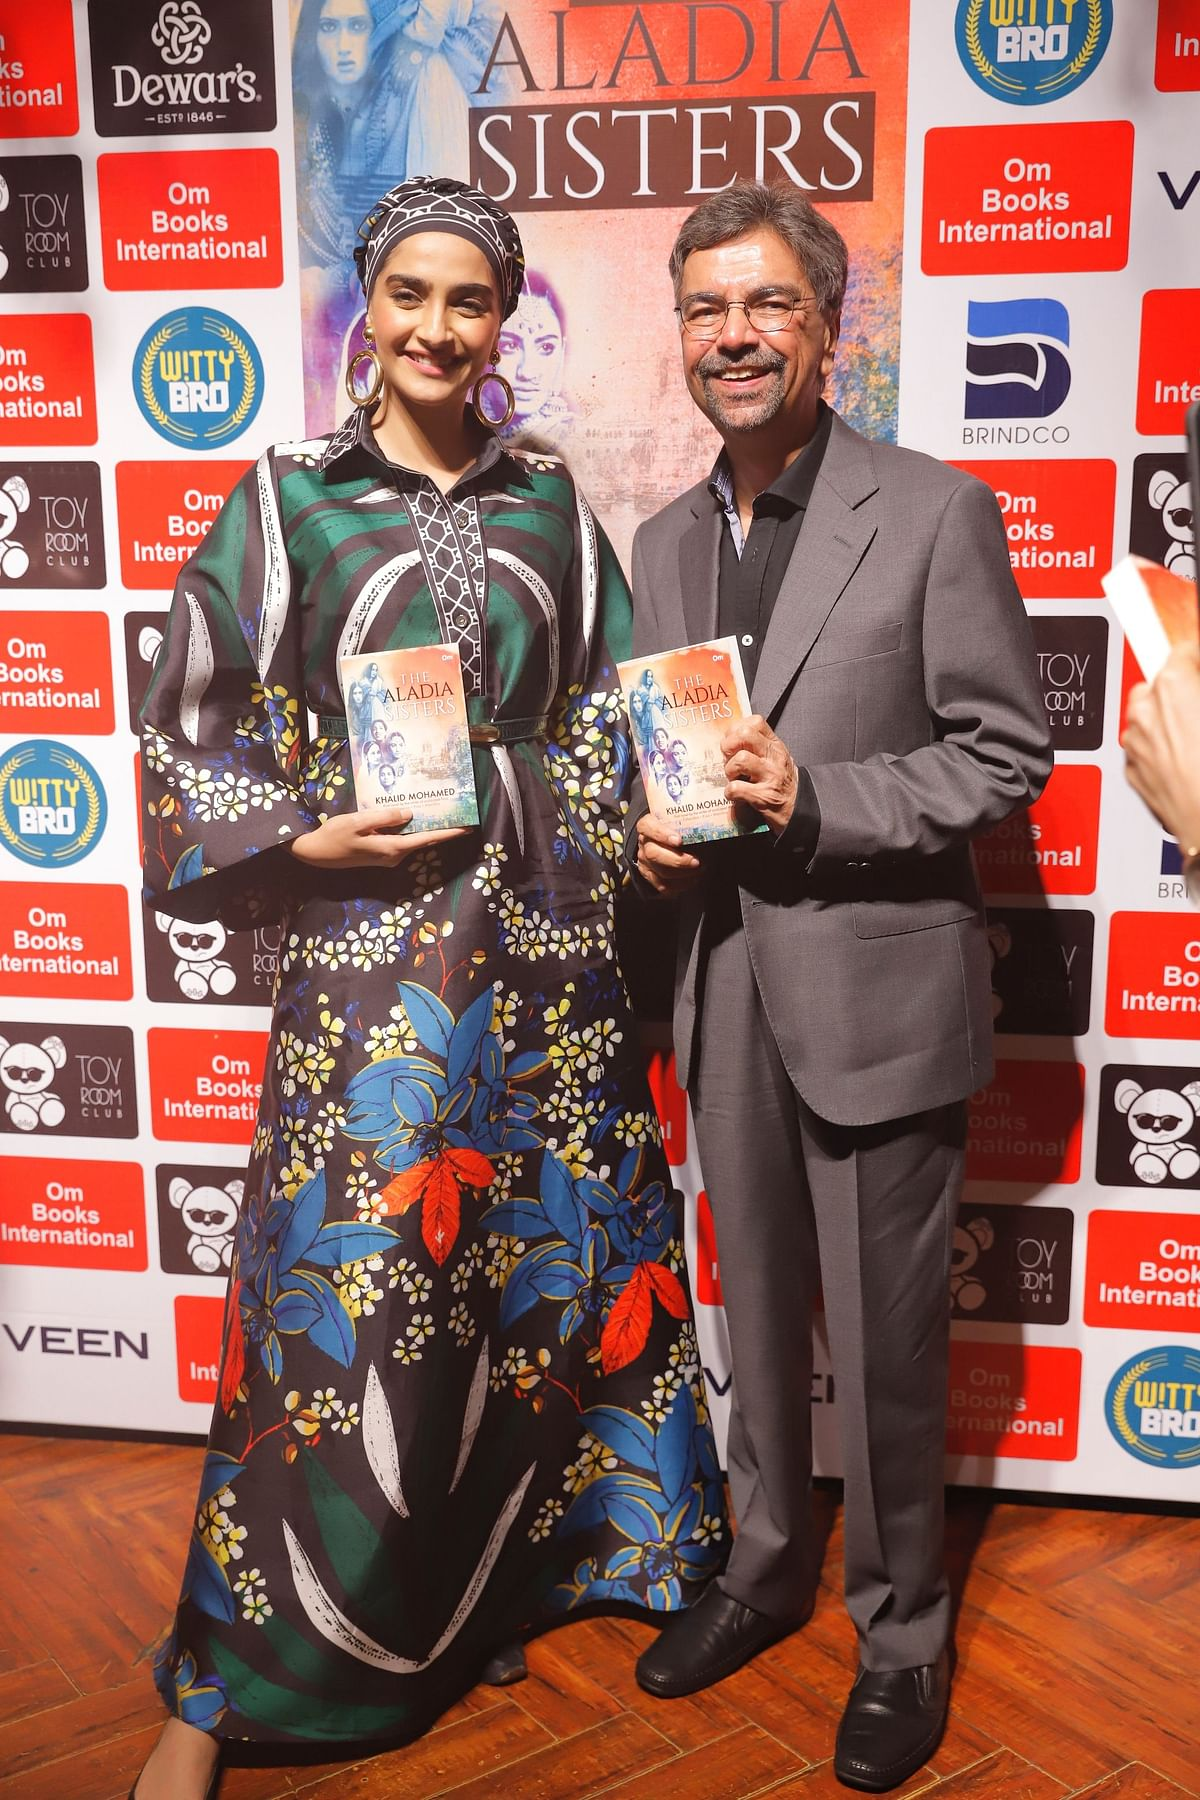 Khalid Mohamed's debut novel 'The Aladia Sisters' launched by Sonam K Ahuja in Delhi